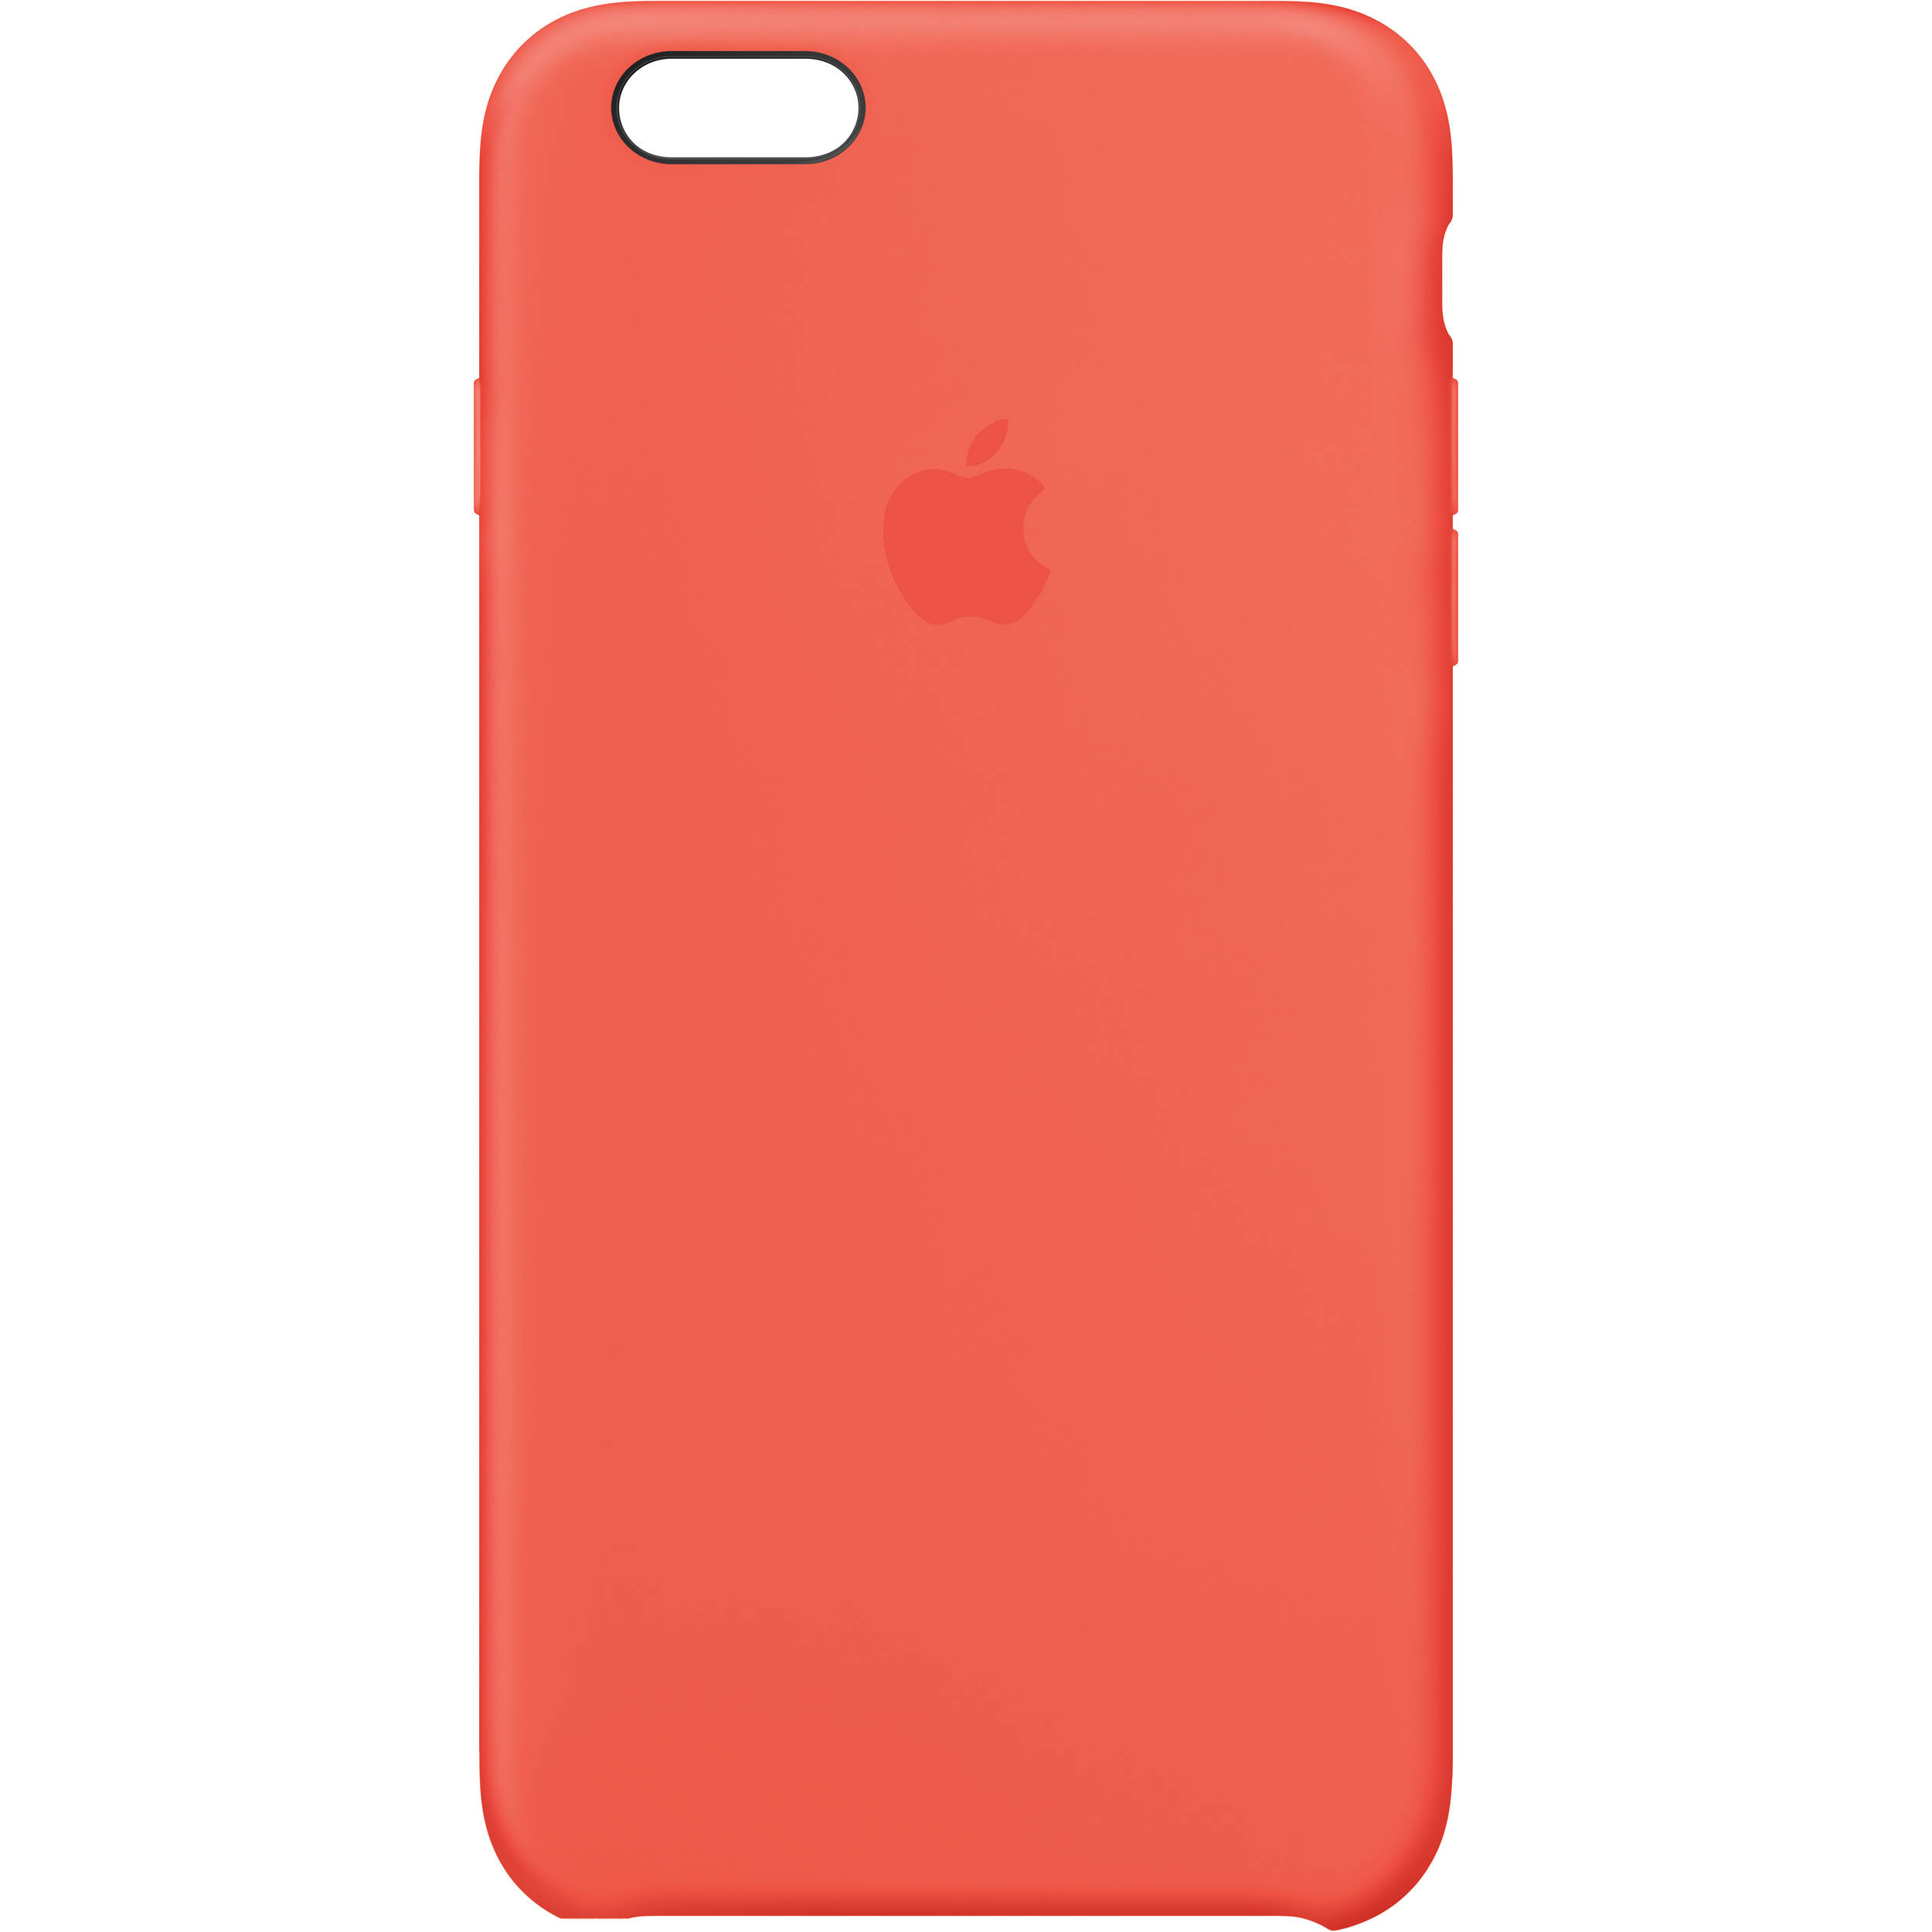 apple iphone 6 plus cases apple iphone 6 plus 6s plus silicone apricot mm6f2zm a 3330